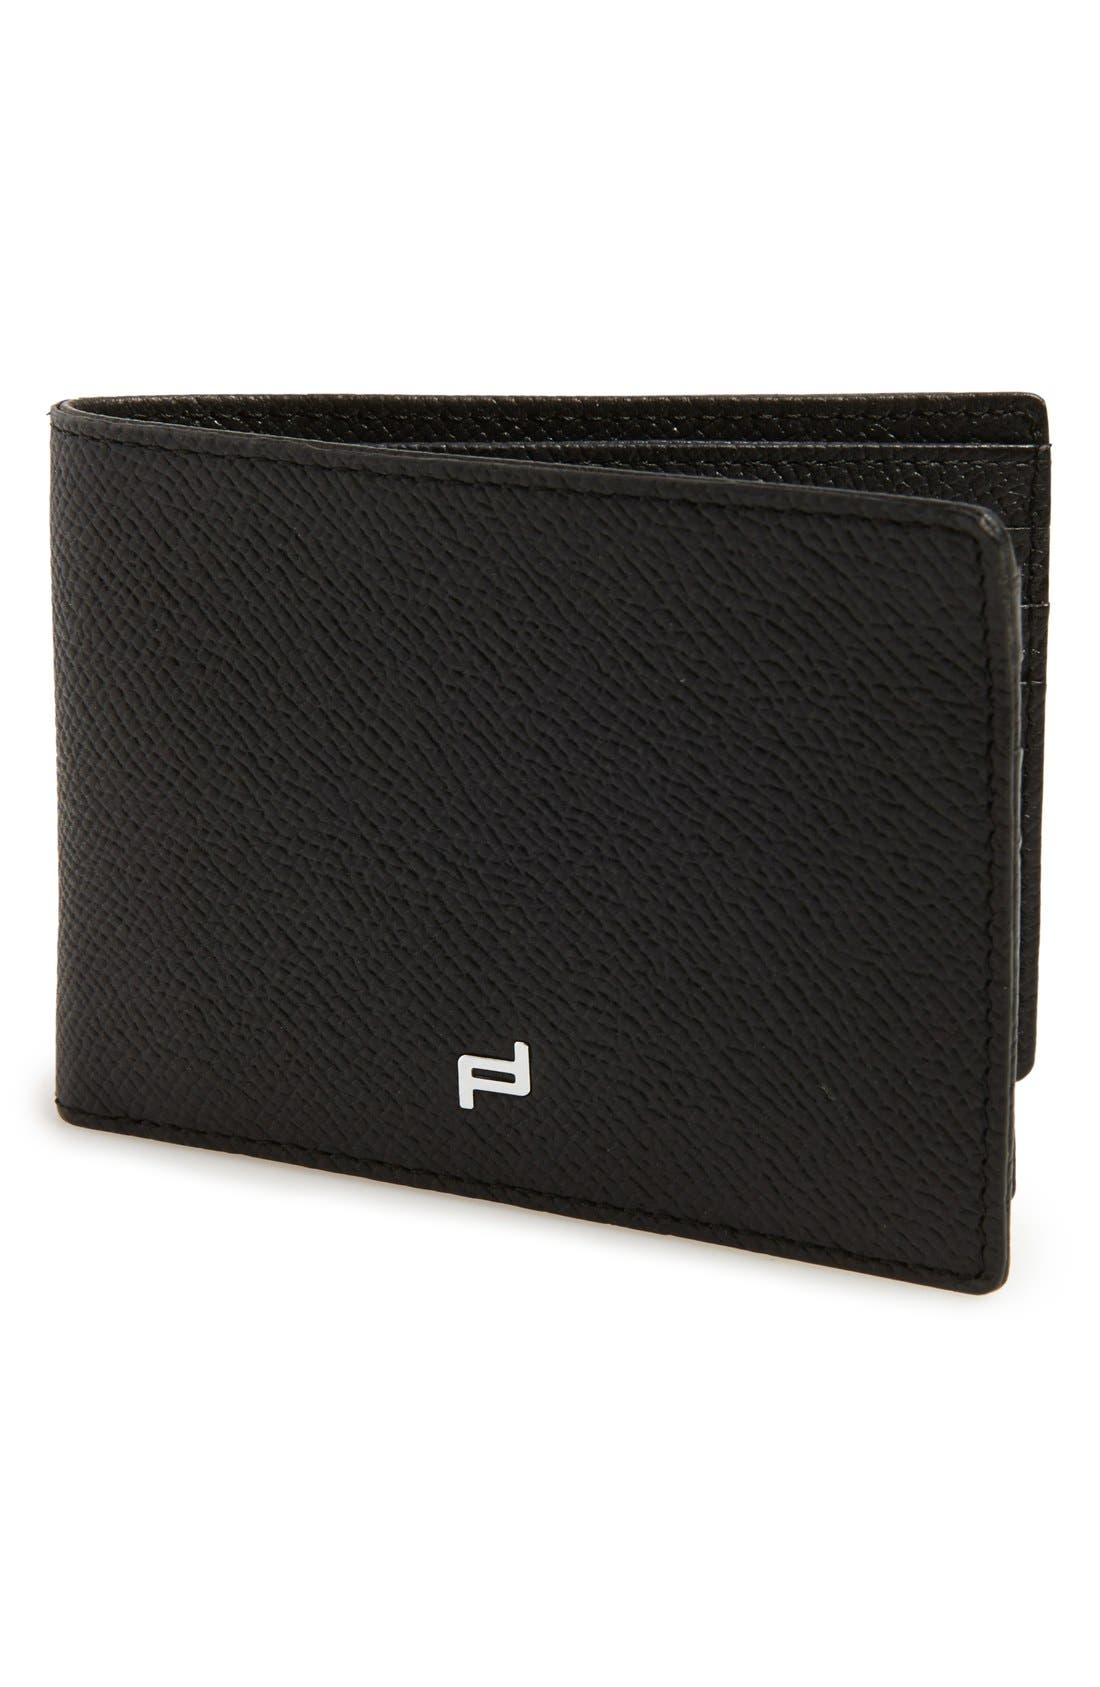 'FC 3.0' Leather L-Fold Wallet,                         Main,                         color, 001